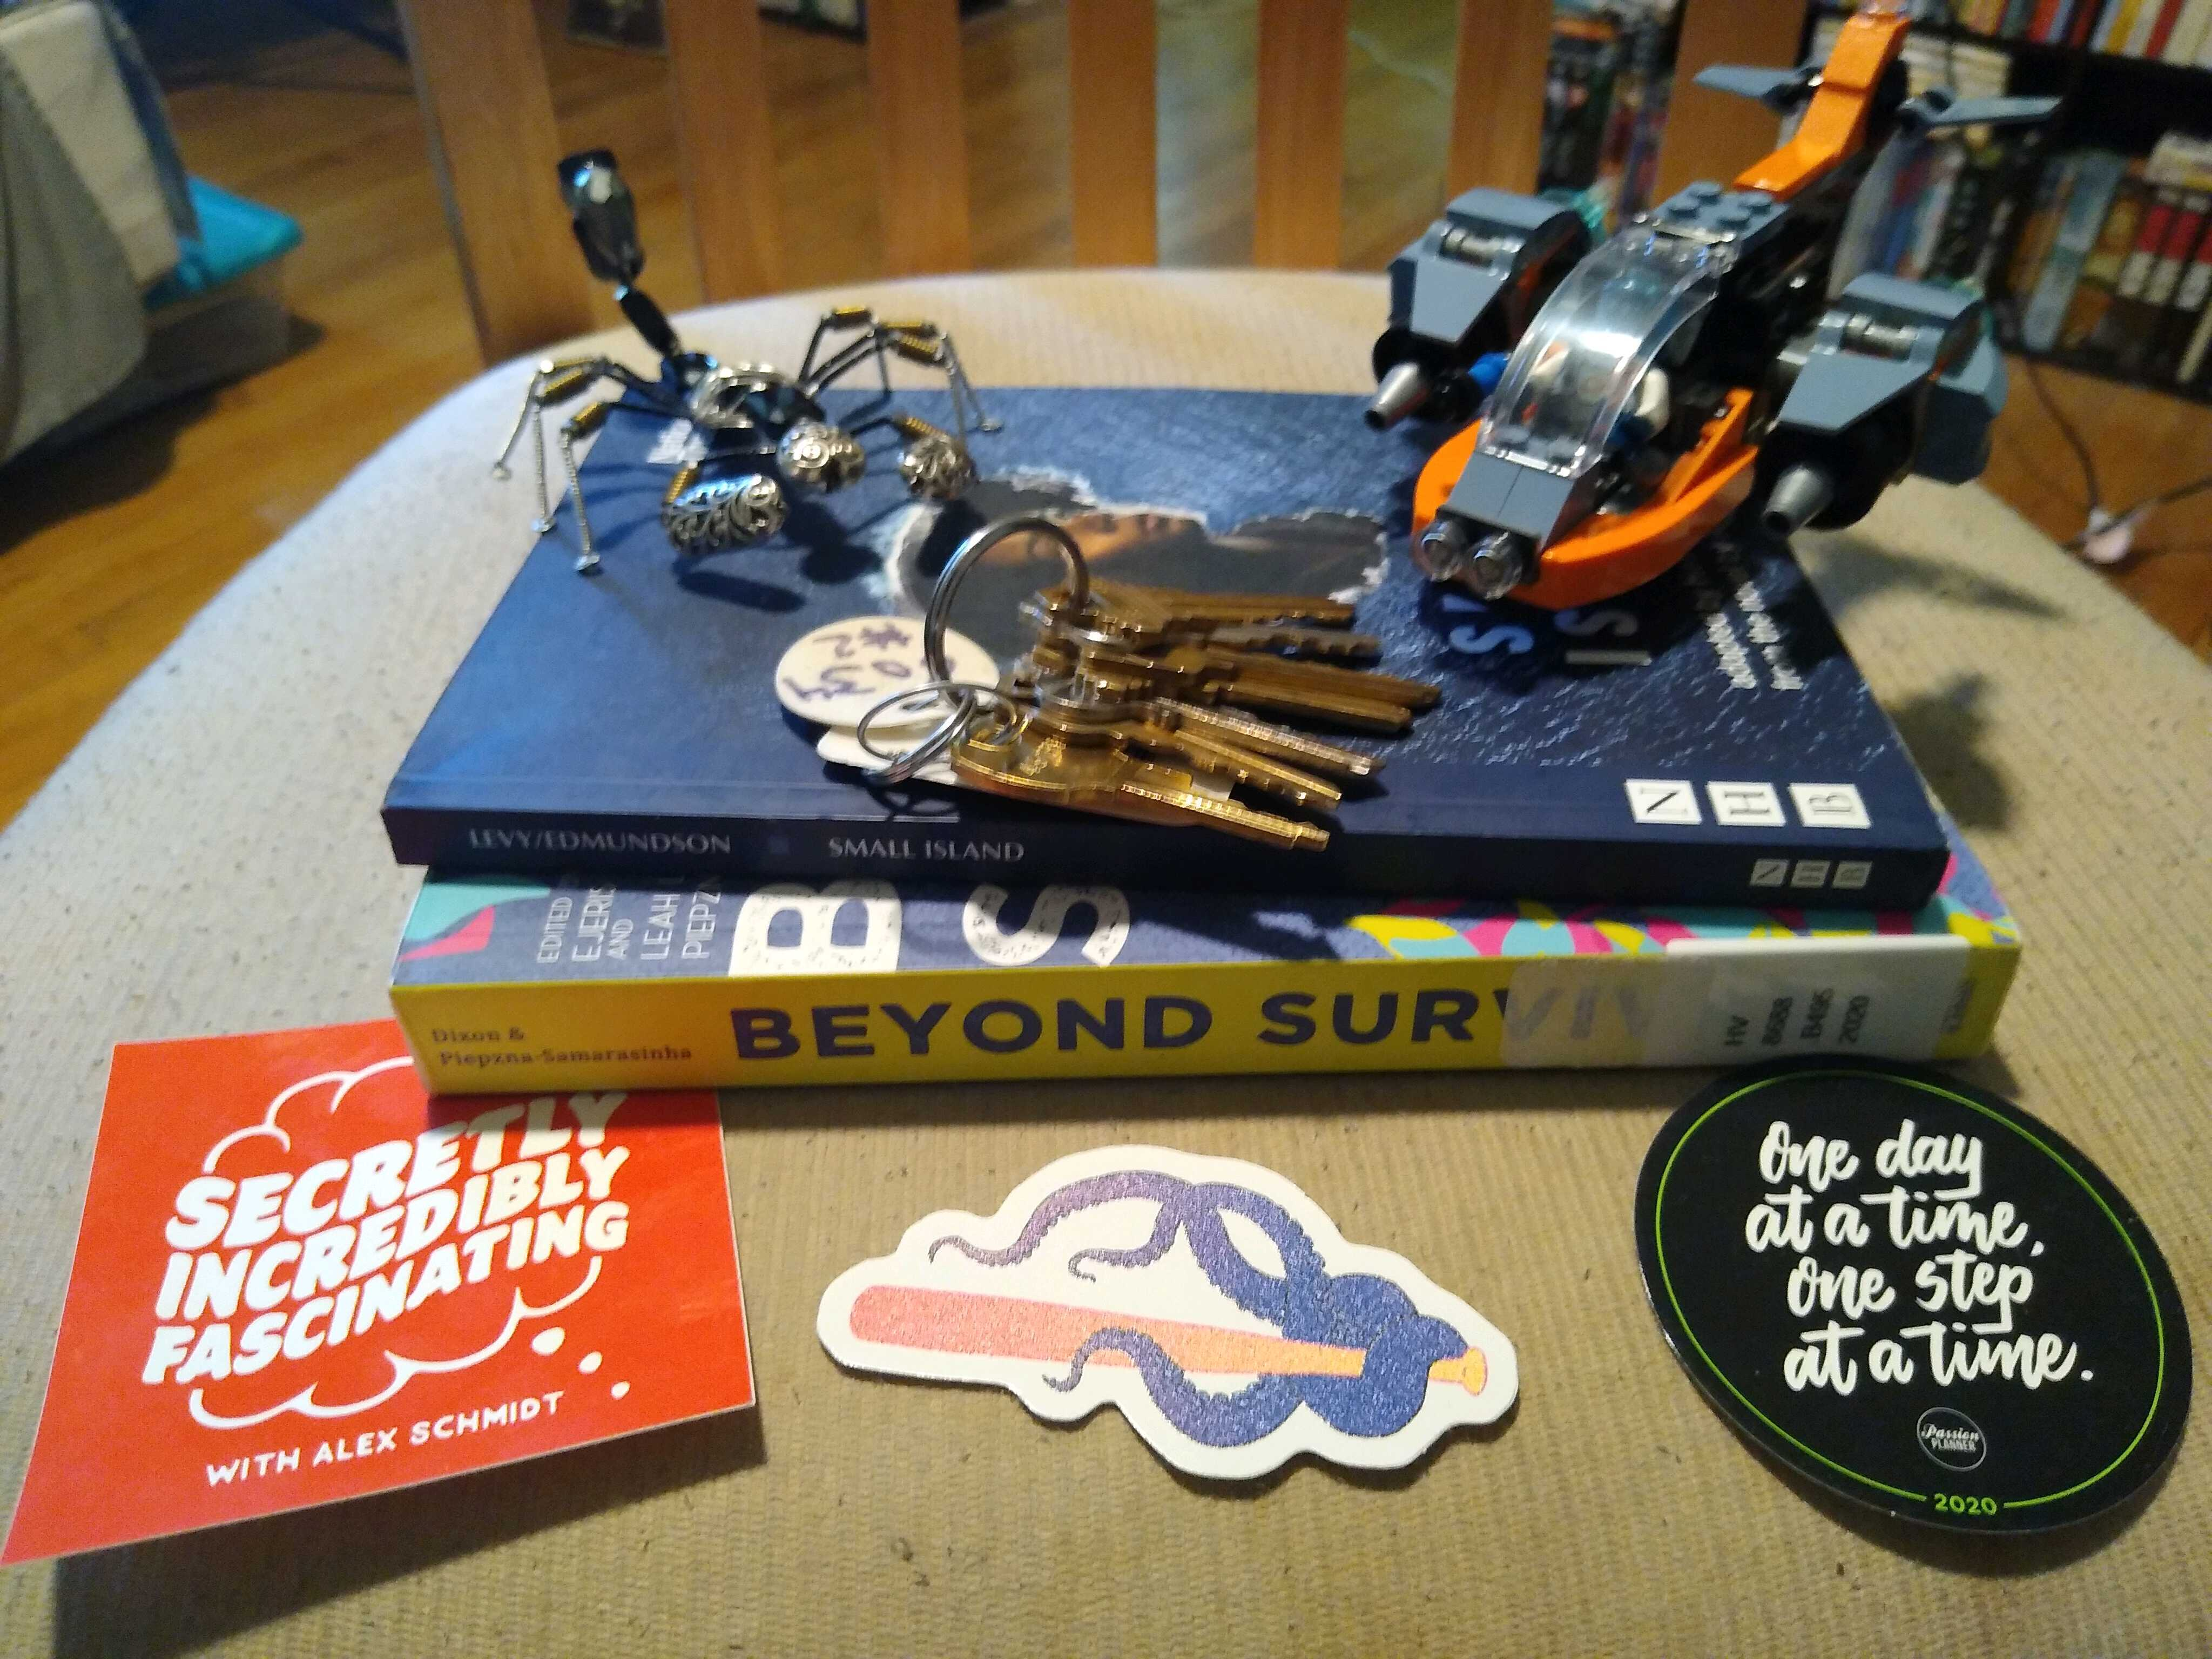 An image of Legos, keys, stickers, and books.